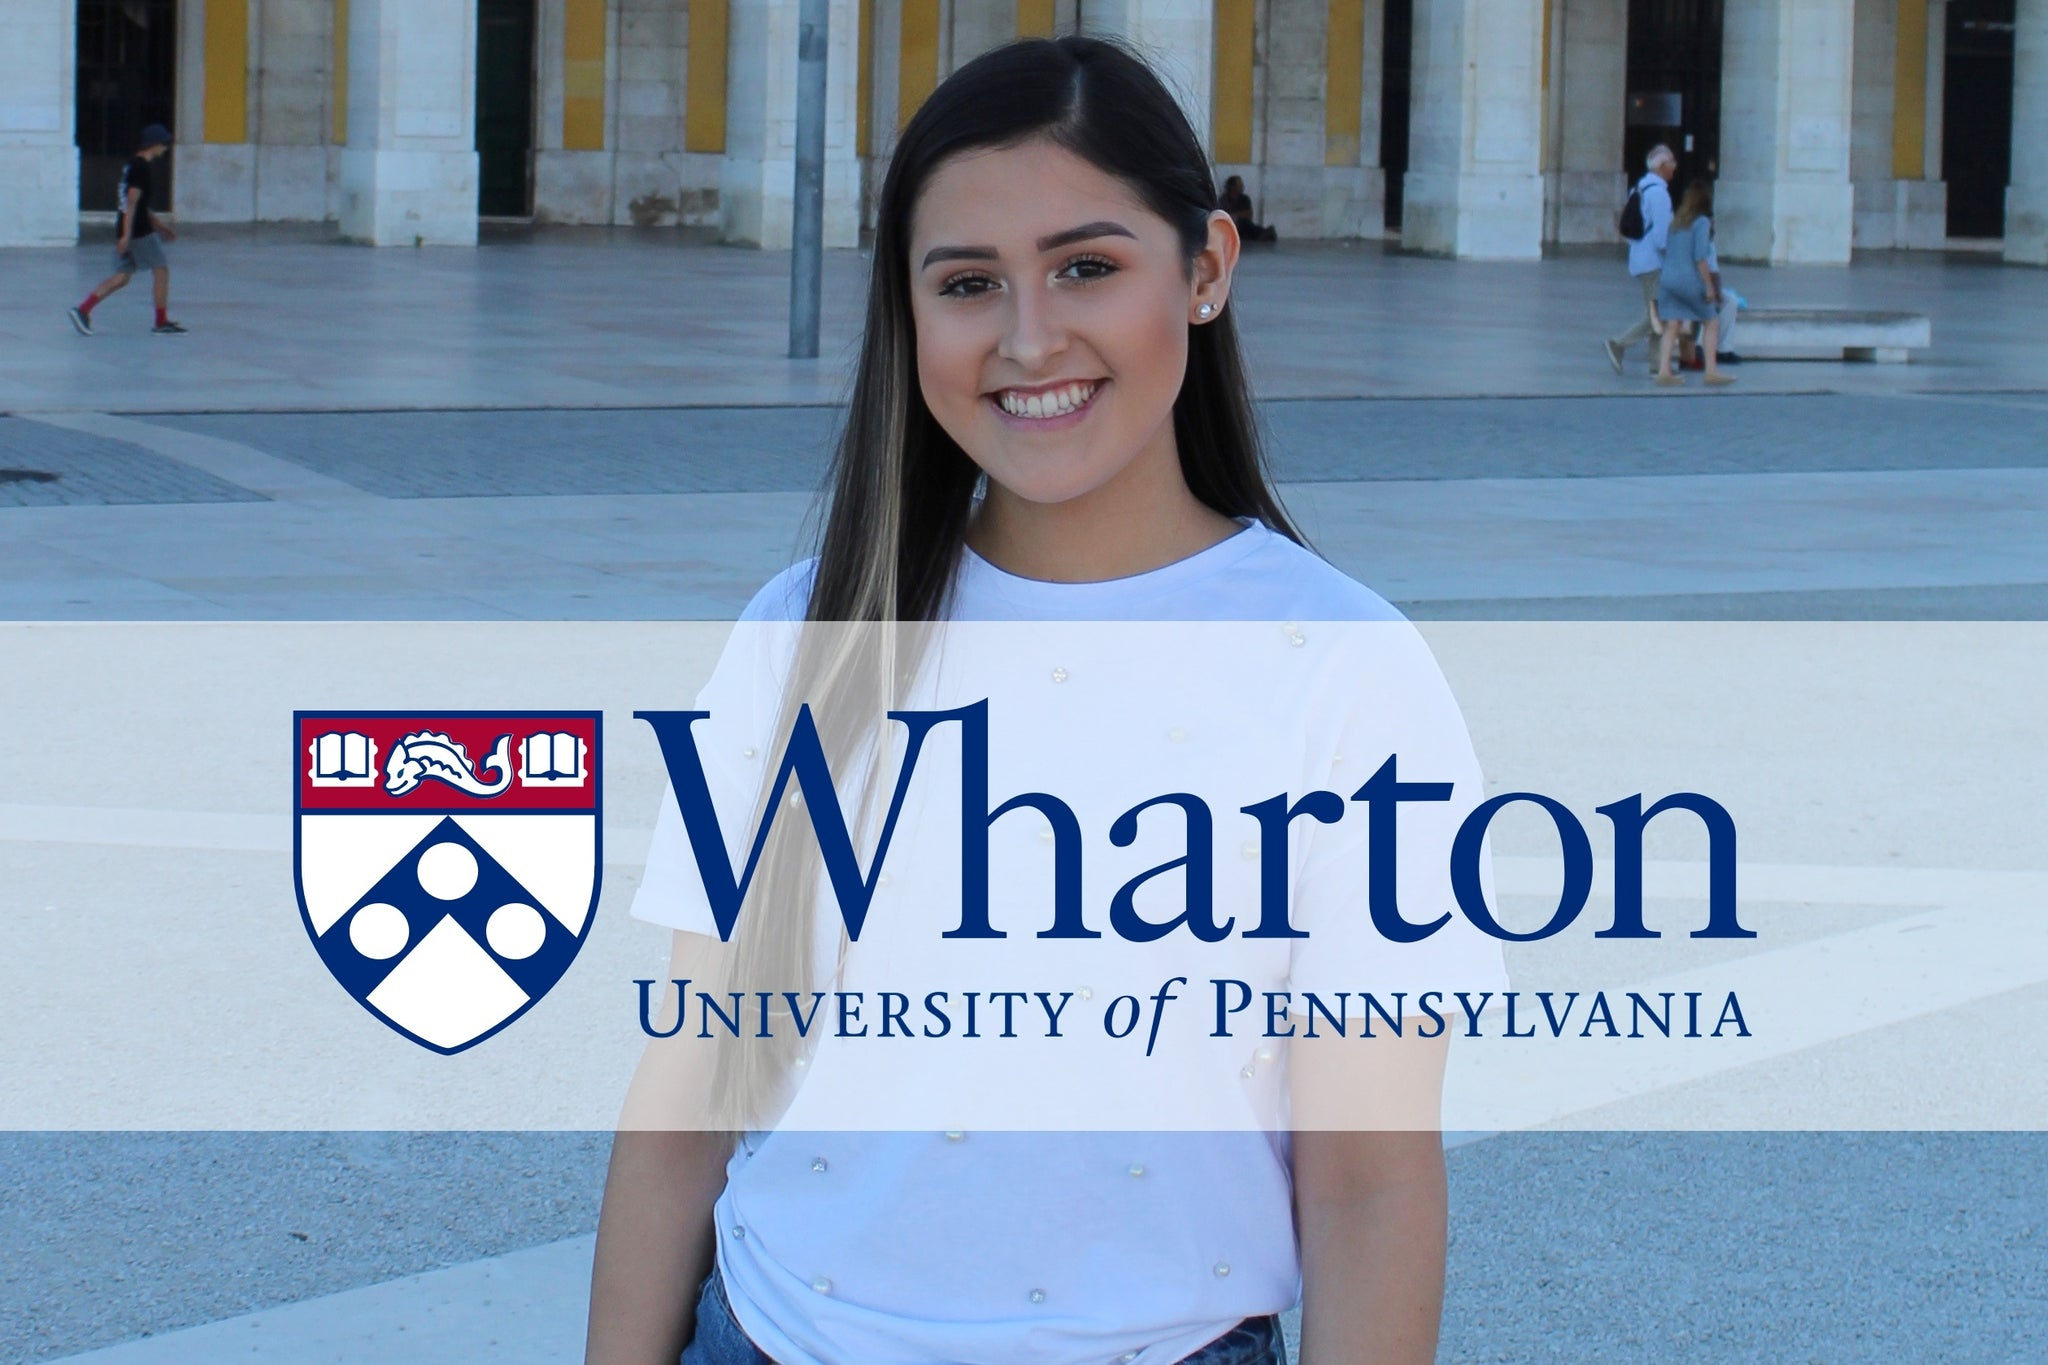 A Day in the Life of a Wharton Student